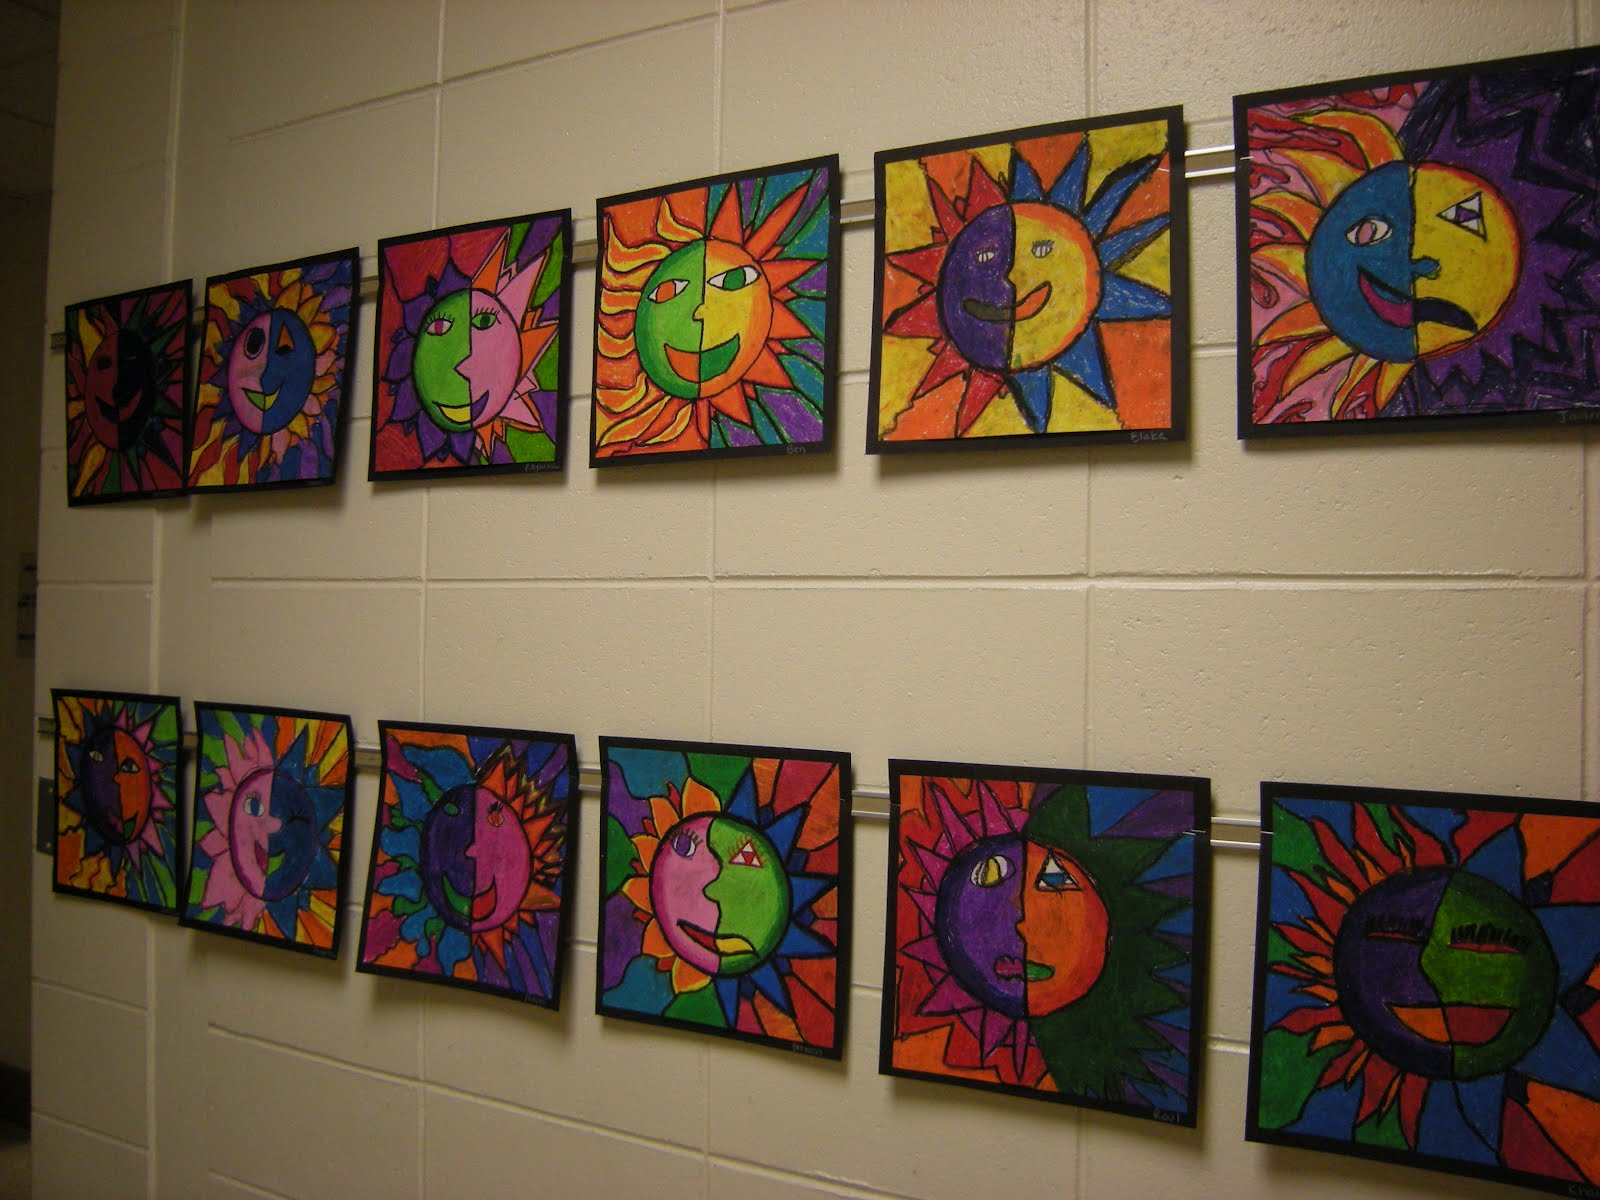 WHAT'S HAPPENING IN THE ART ROOM??: Feb 22, 2012